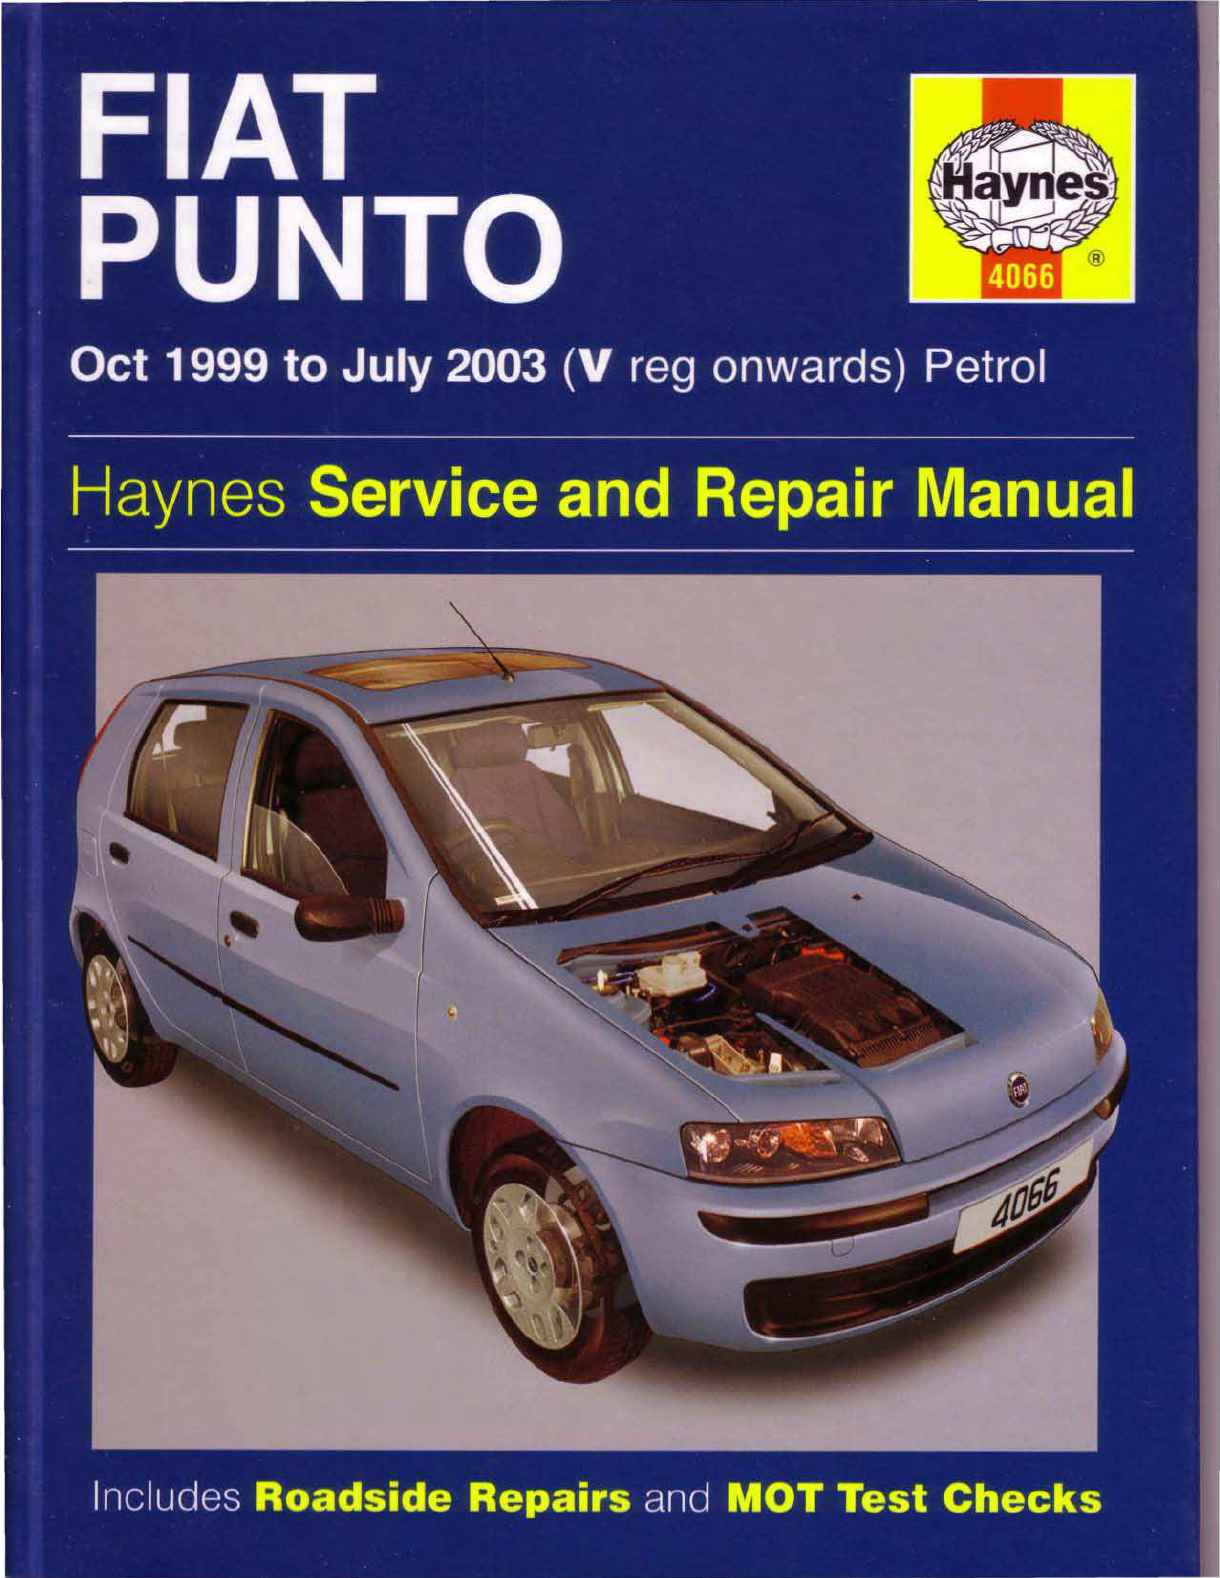 fiat punto 1999 2003 workshop manual pdf rh manuals co manual fiat punto 2000 pdf manual fiat punto 2014